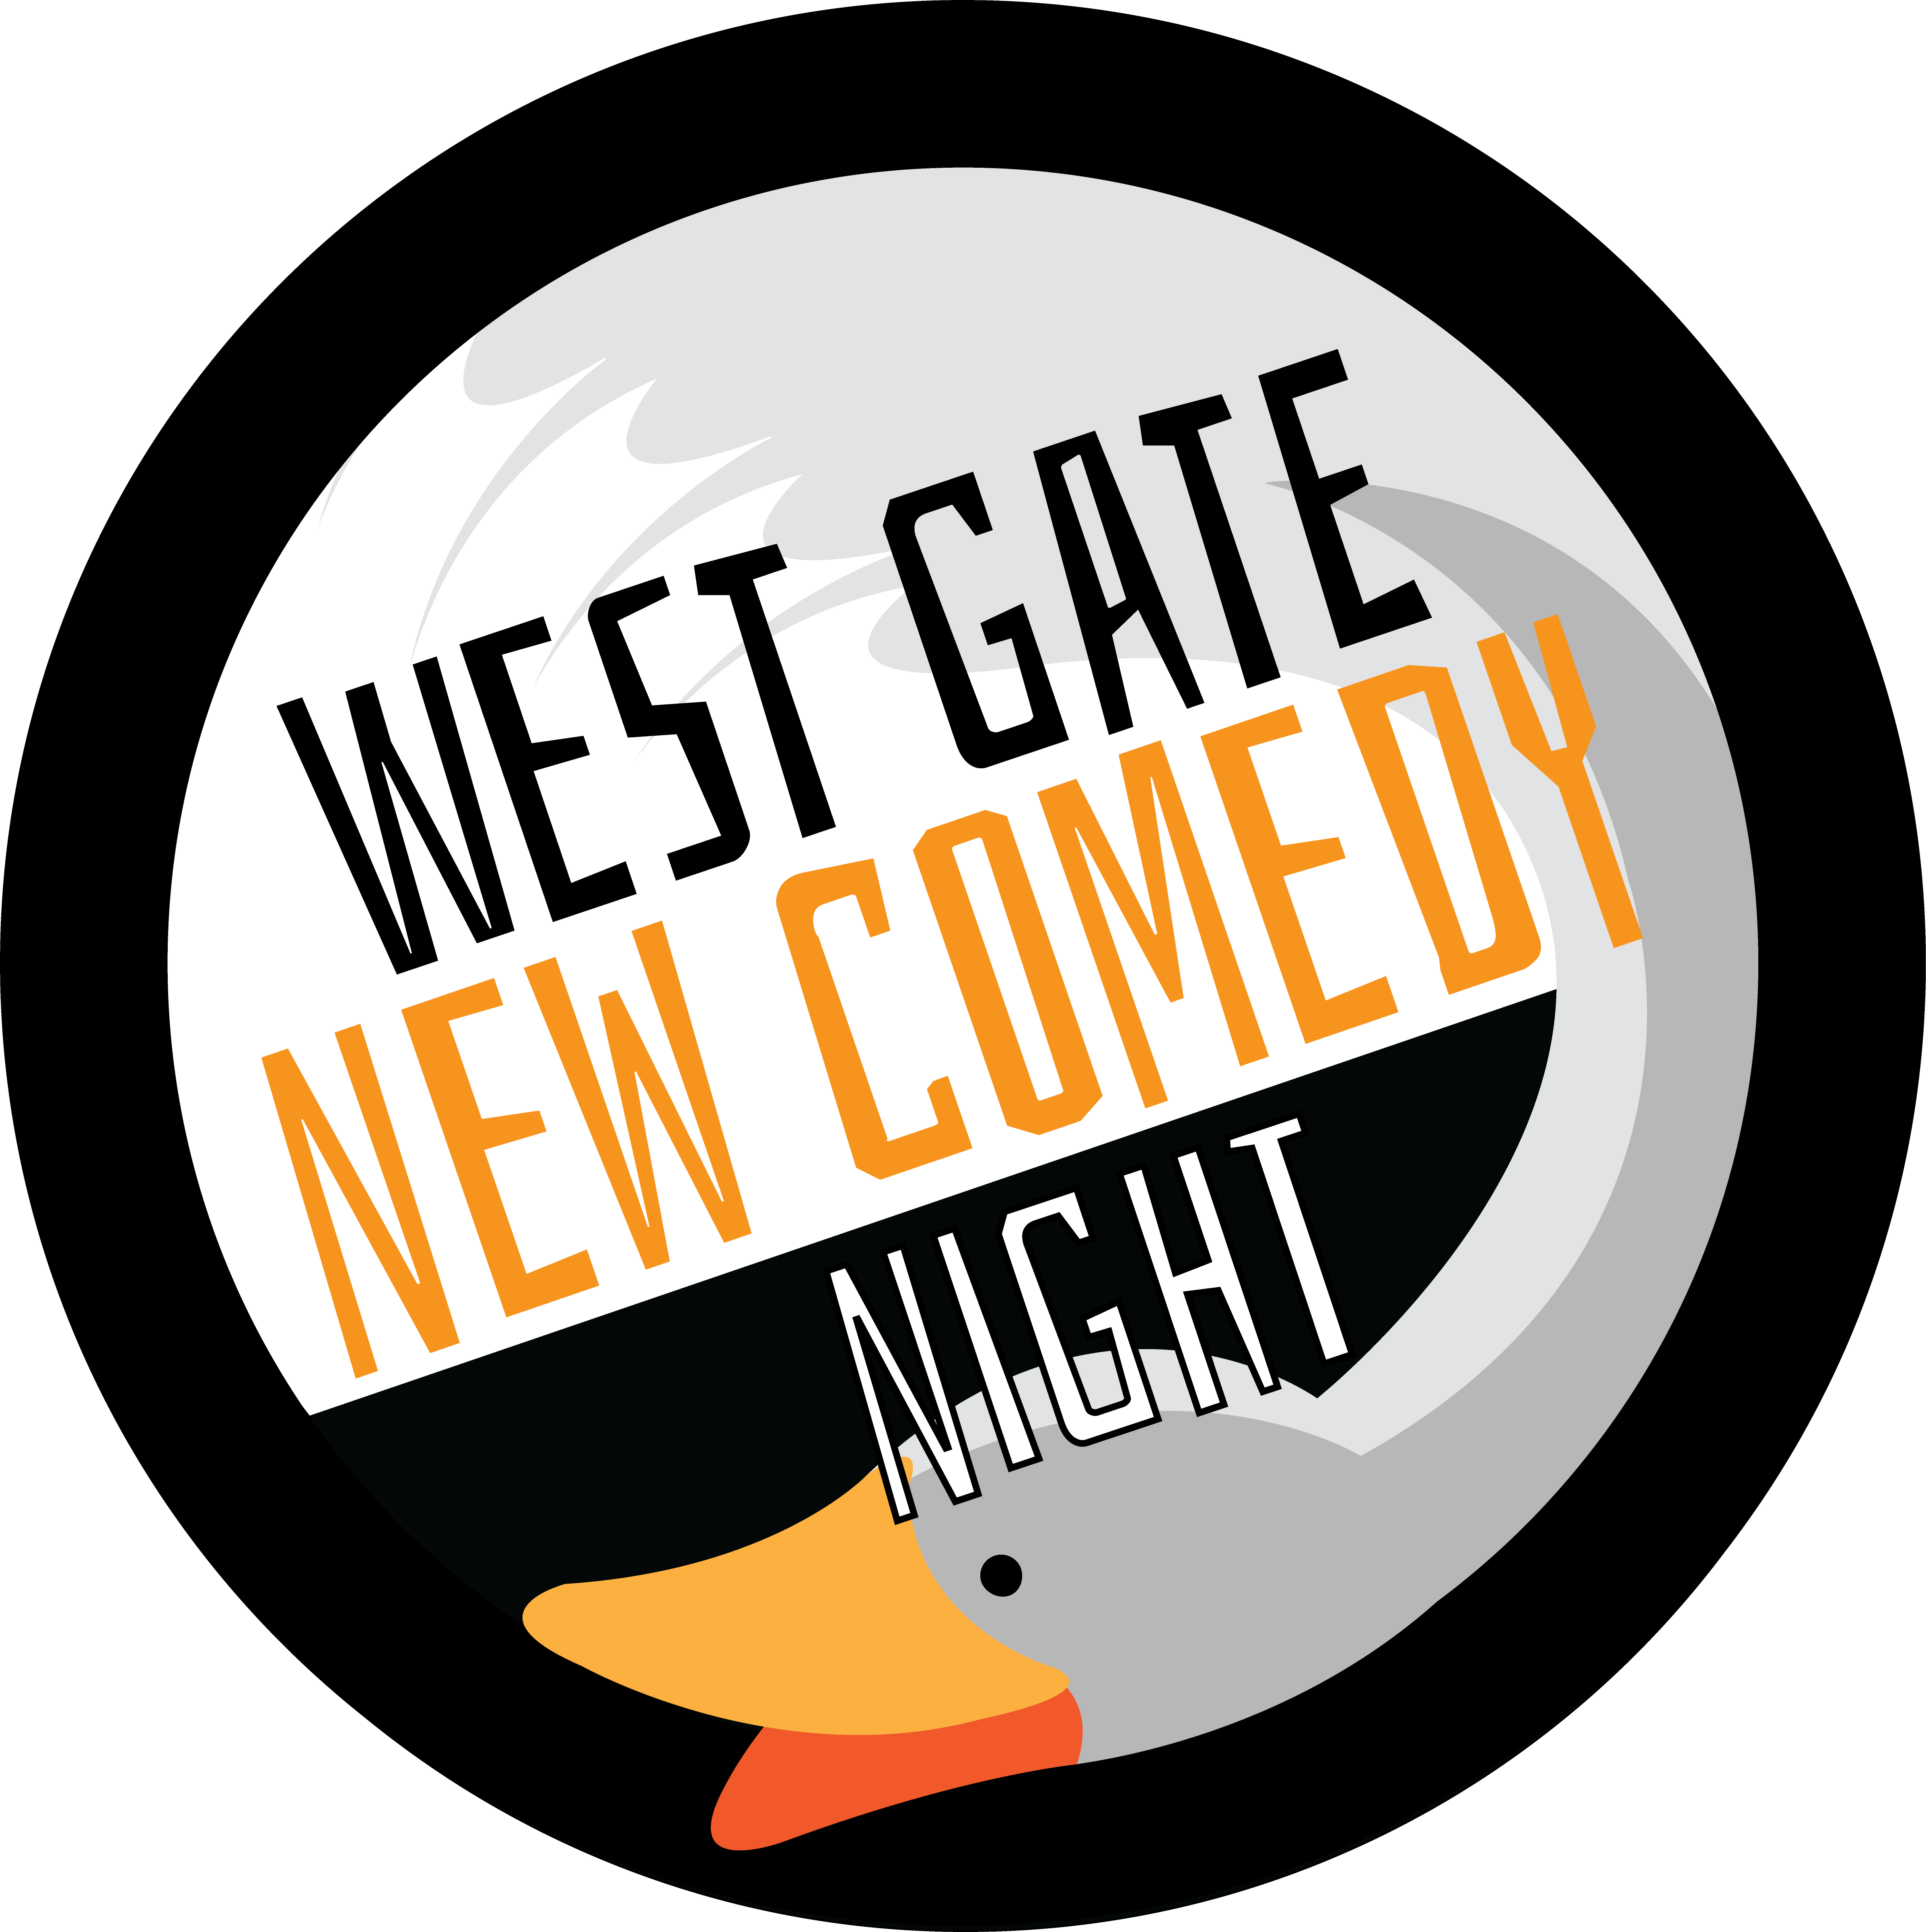 """west Gate New Comedy Night"""" At The West Gate Clipart."""